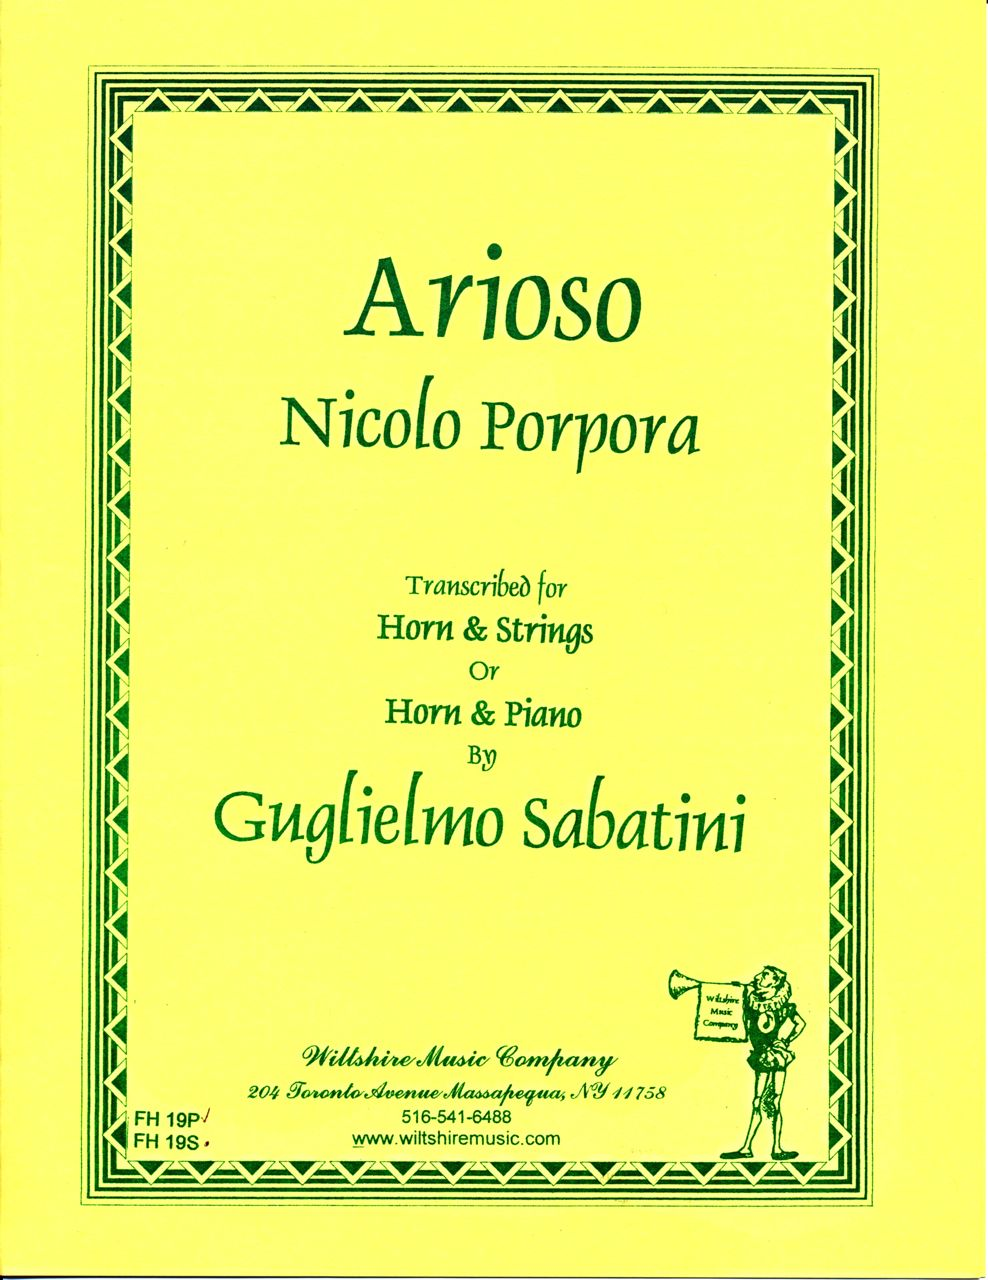 Arioso - PORPORA, NICOLA for horn & strings